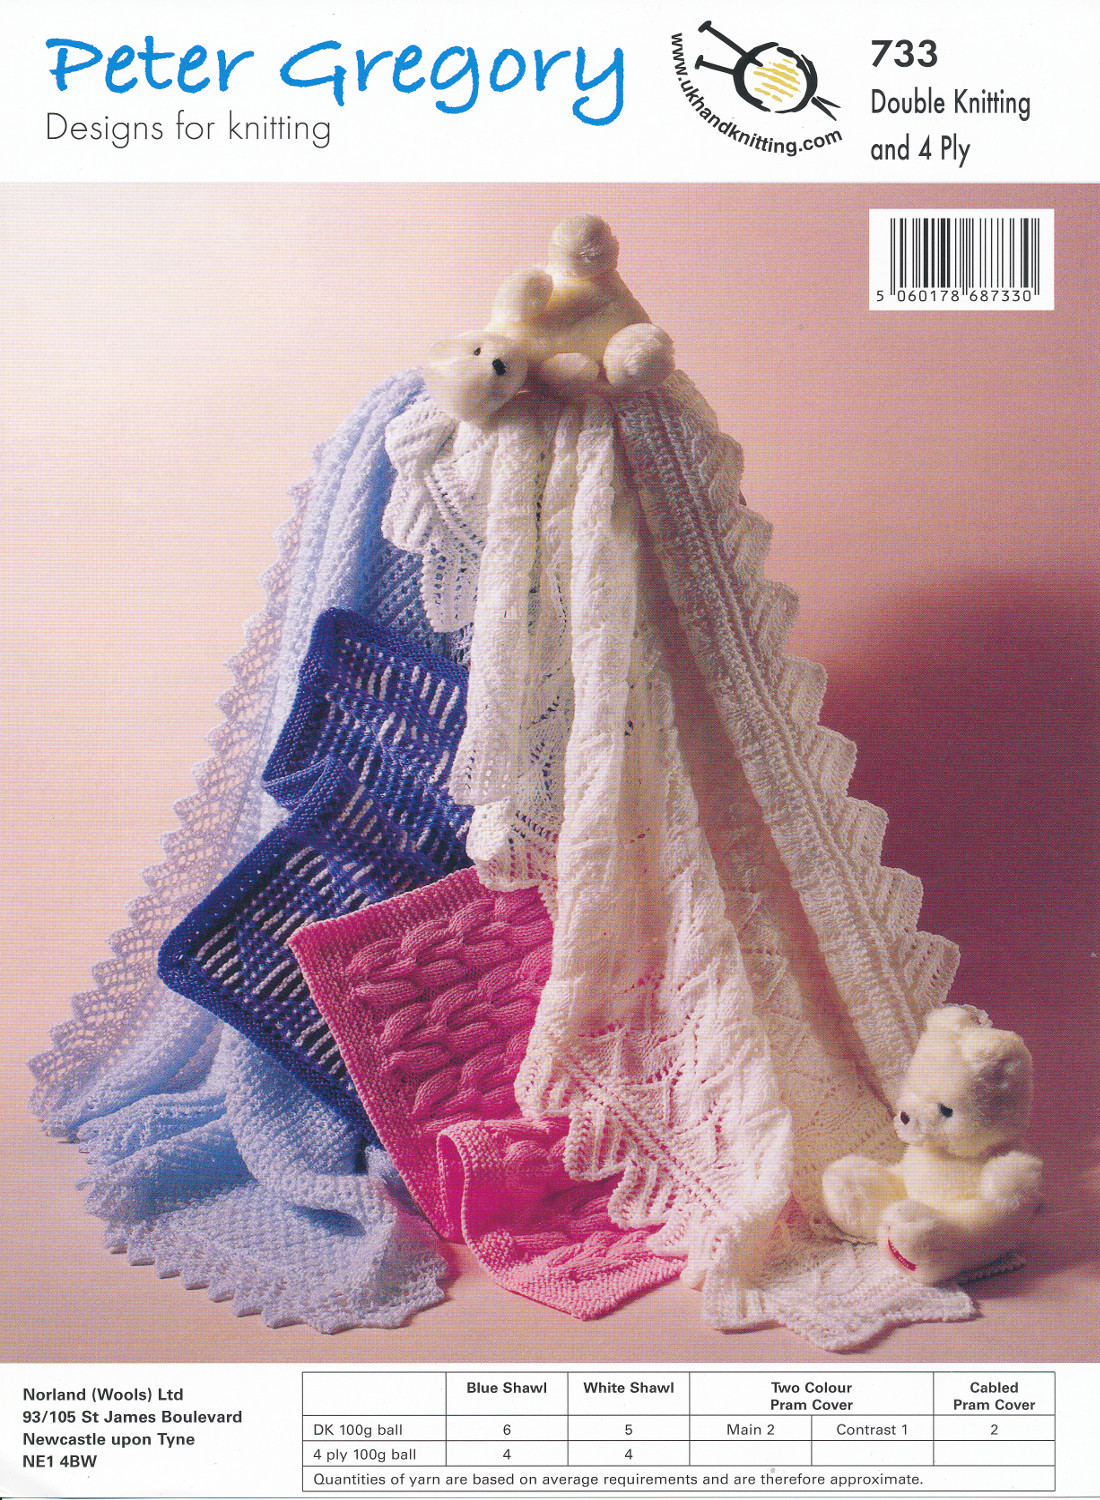 Scarves Knitting Patterns Free : Peter Gregory Double Knitting 4 Ply Pattern Lacy Cable Knit Shawl Pram Cover ...